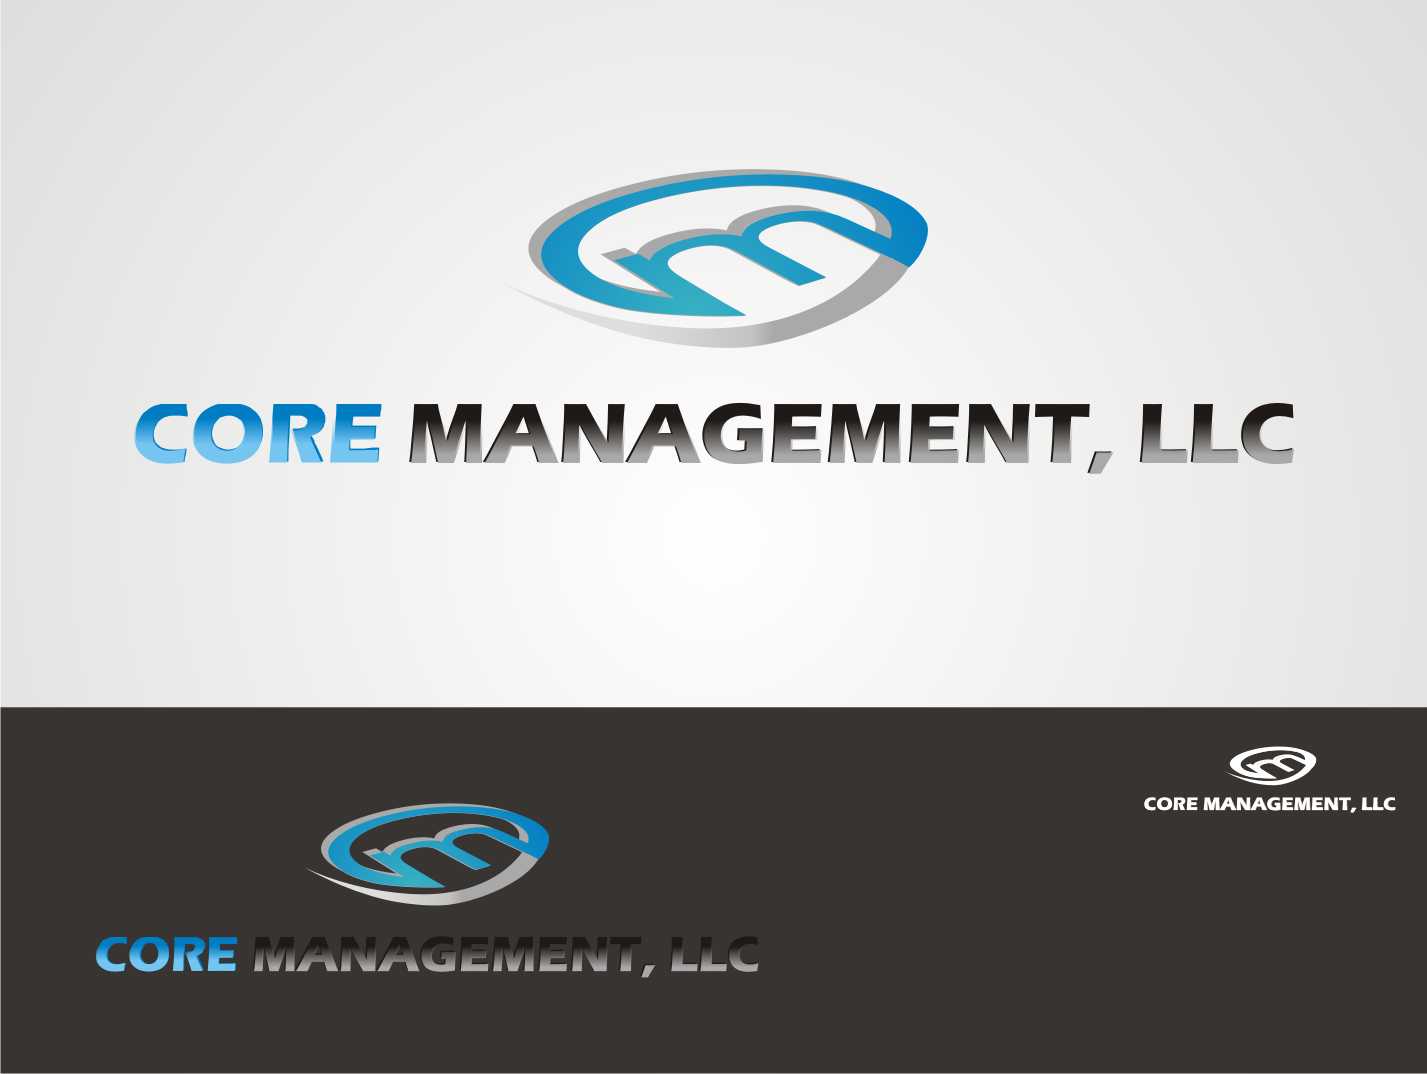 Logo Design by Nthus Nthis - Entry No. 7 in the Logo Design Contest Creative Logo Design for CORE Management, LLC.